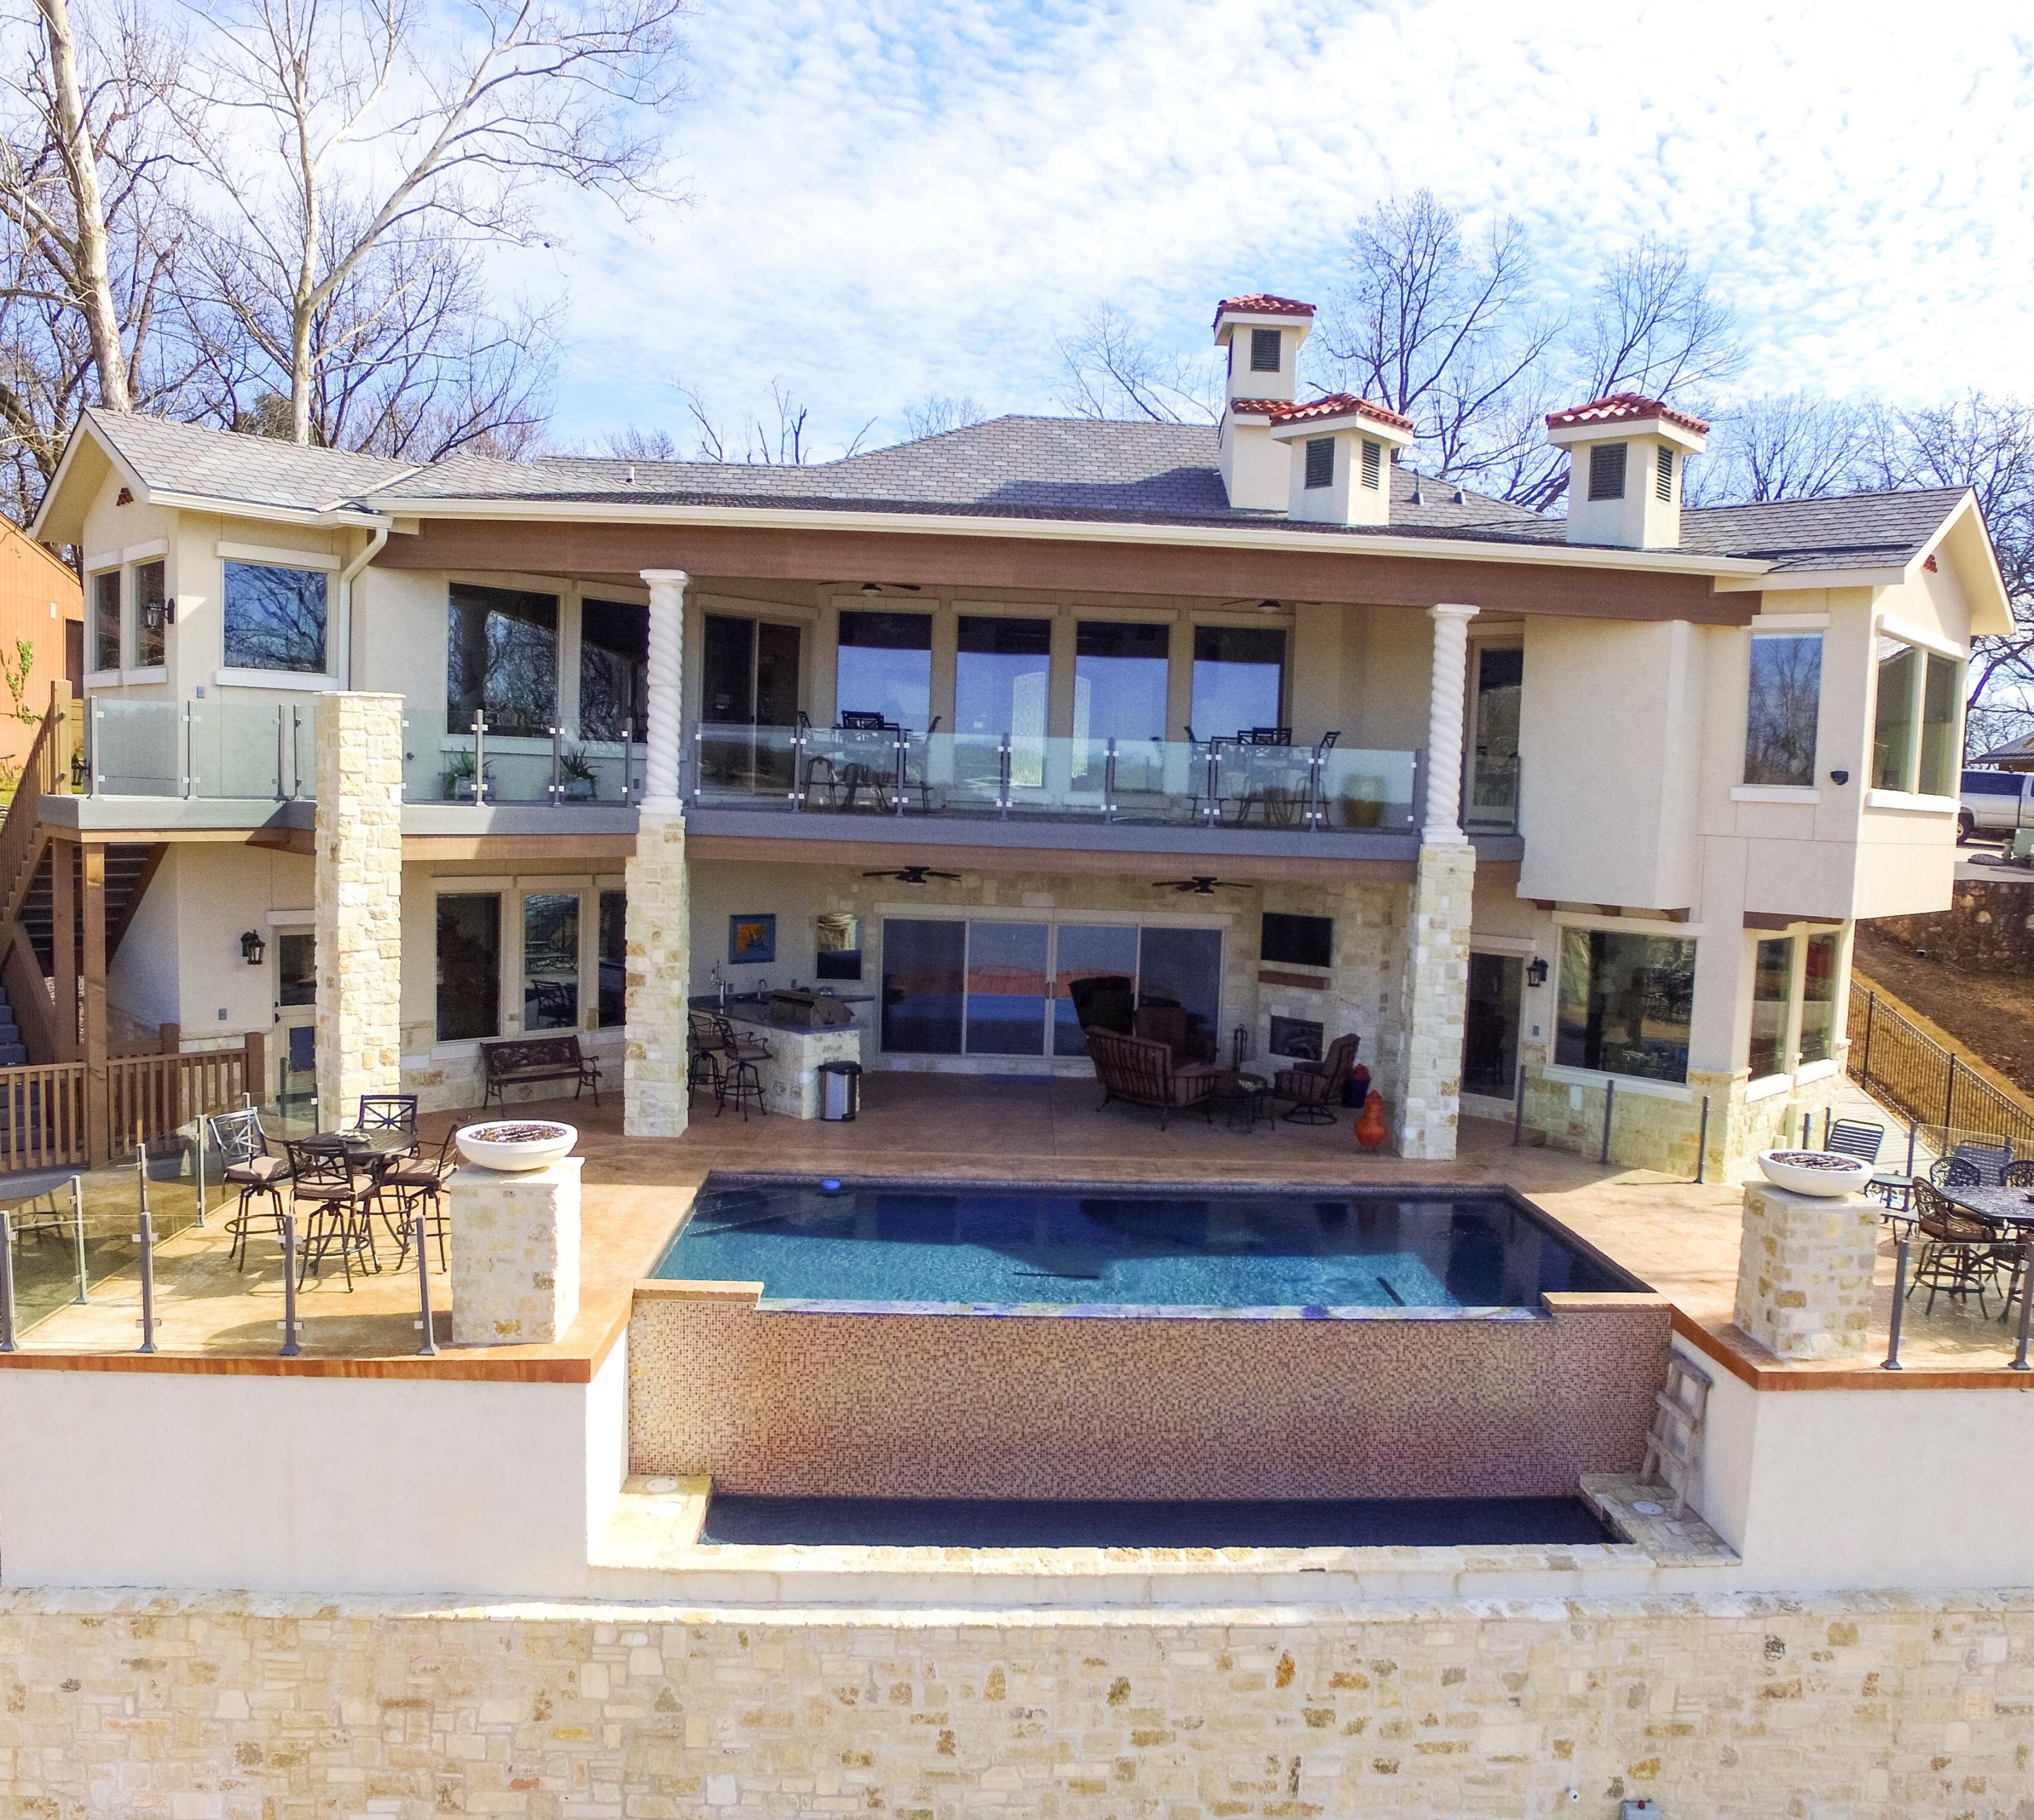 House Back Pool And Waterfall